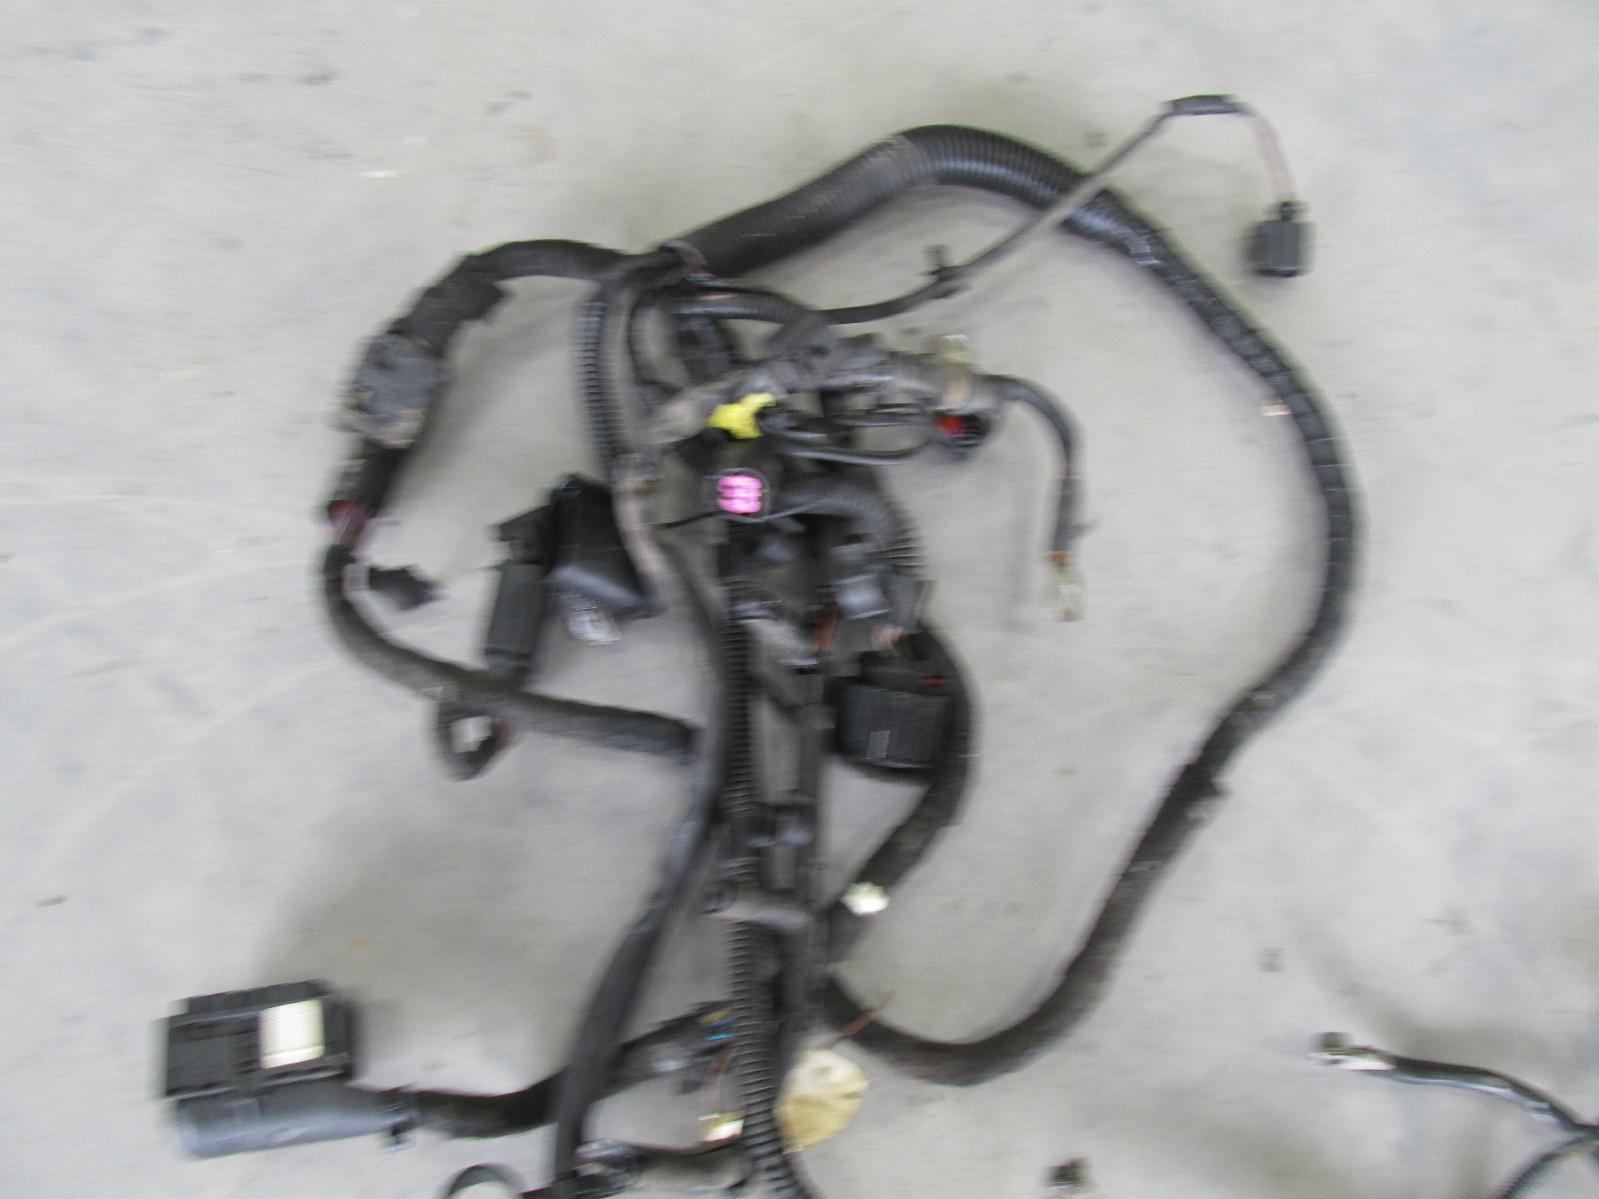 Vw Beetle Engine Wiring Harness : Vw beetle tdi engine wiring harness ebay